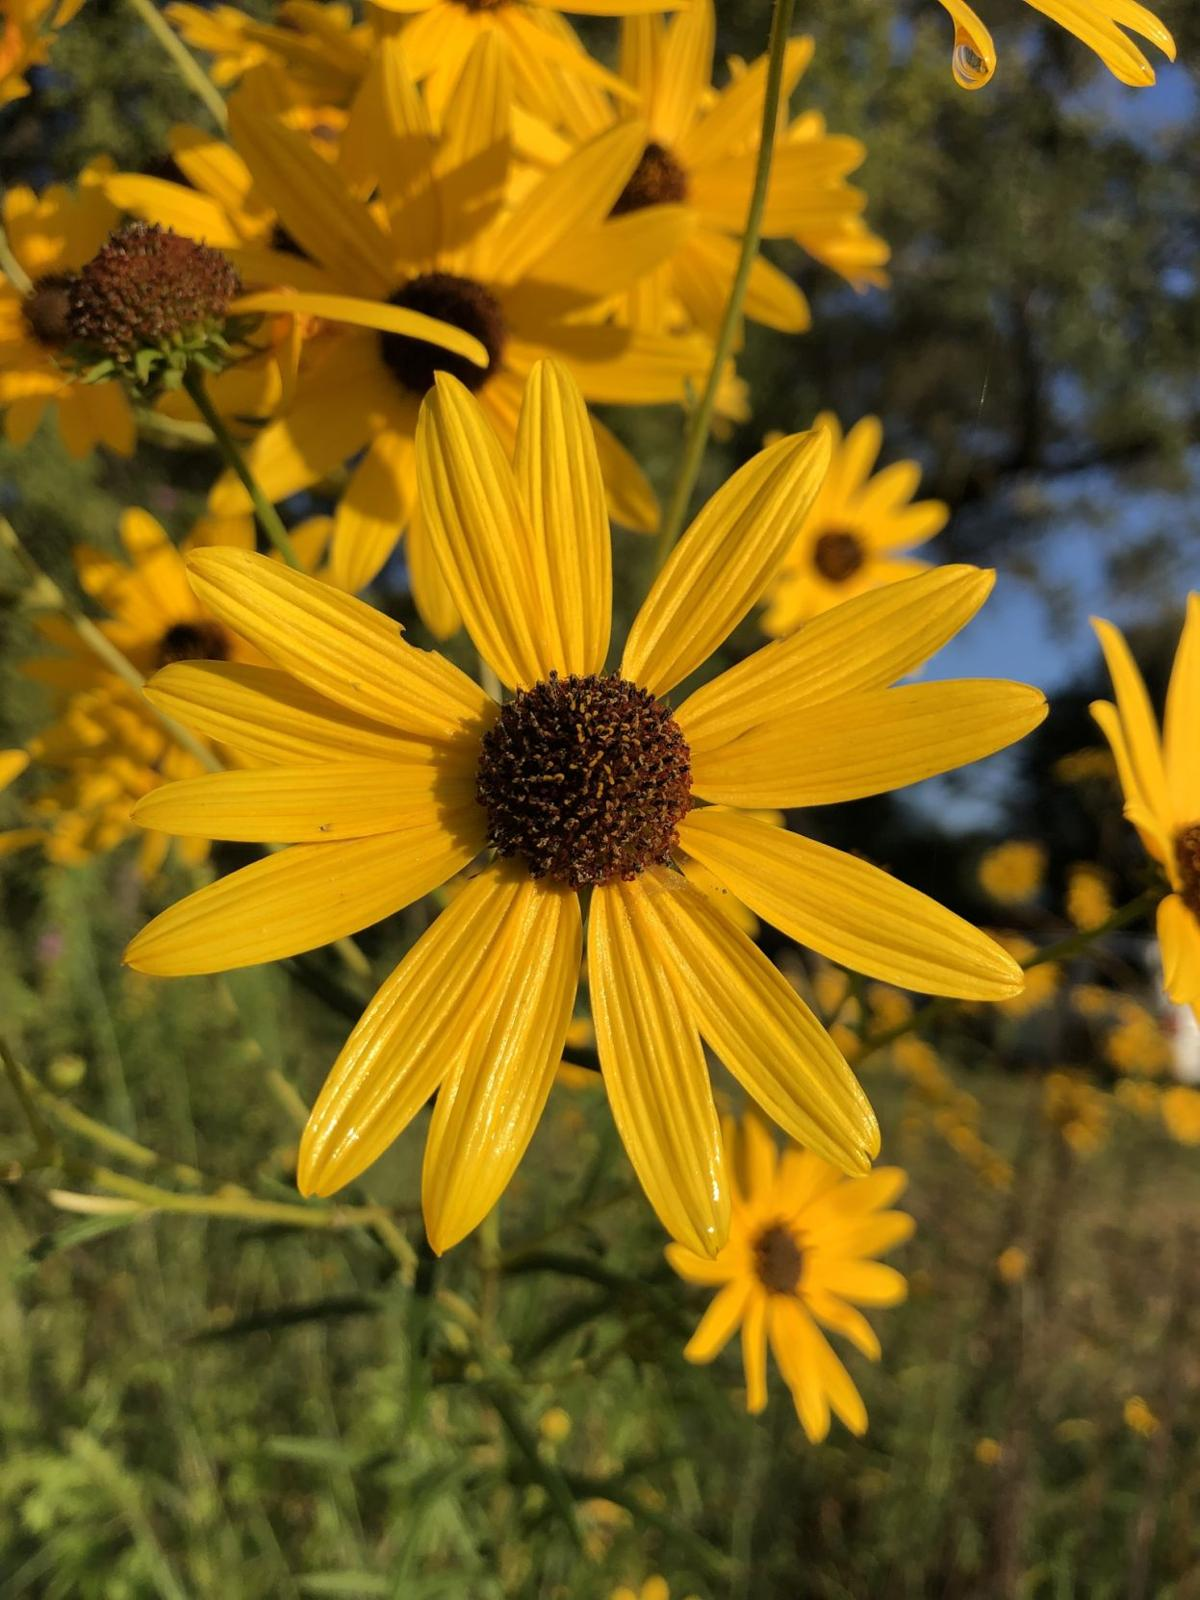 Native plants aren't for everyone, but they can be fun!